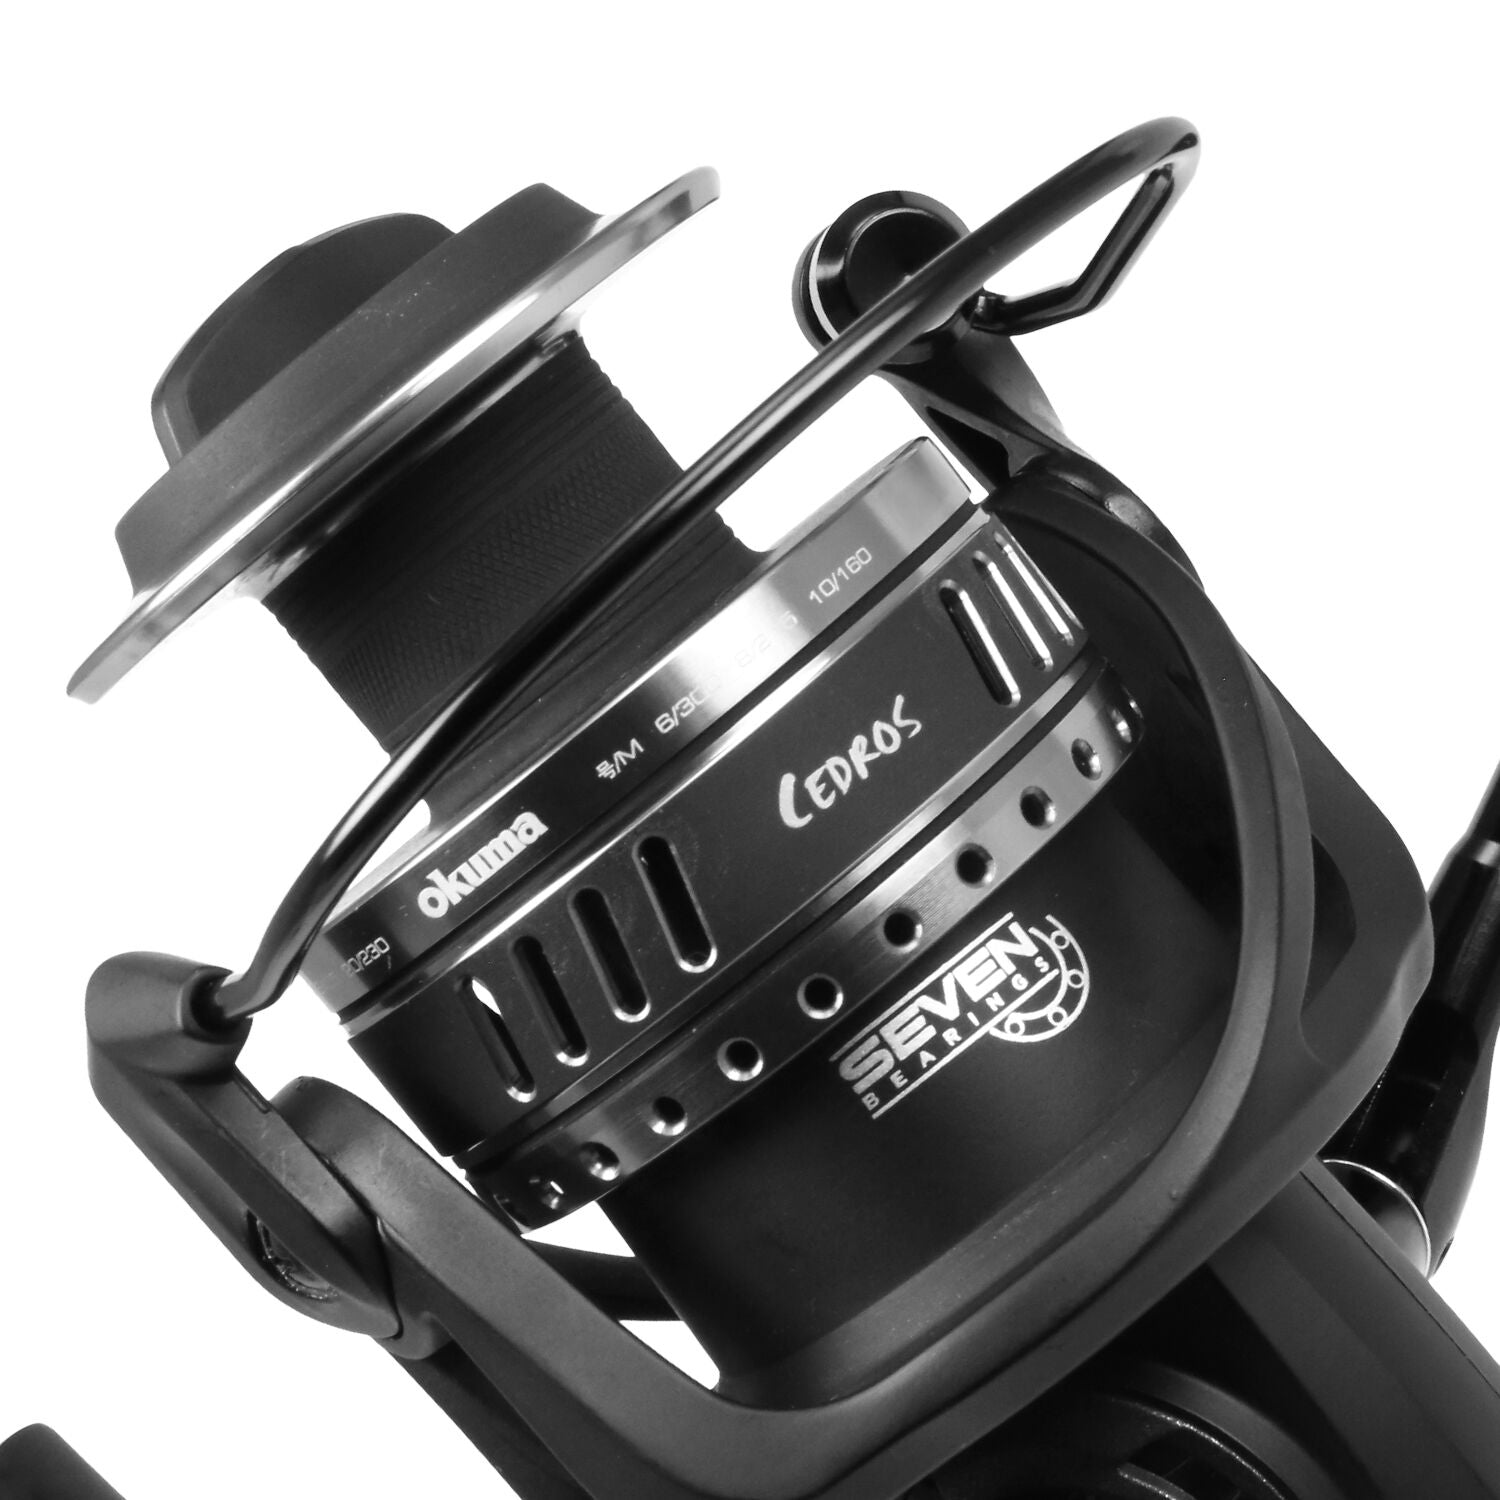 Tune-Up Tuesday: How To Adjust the Drag on a Spinning Reel